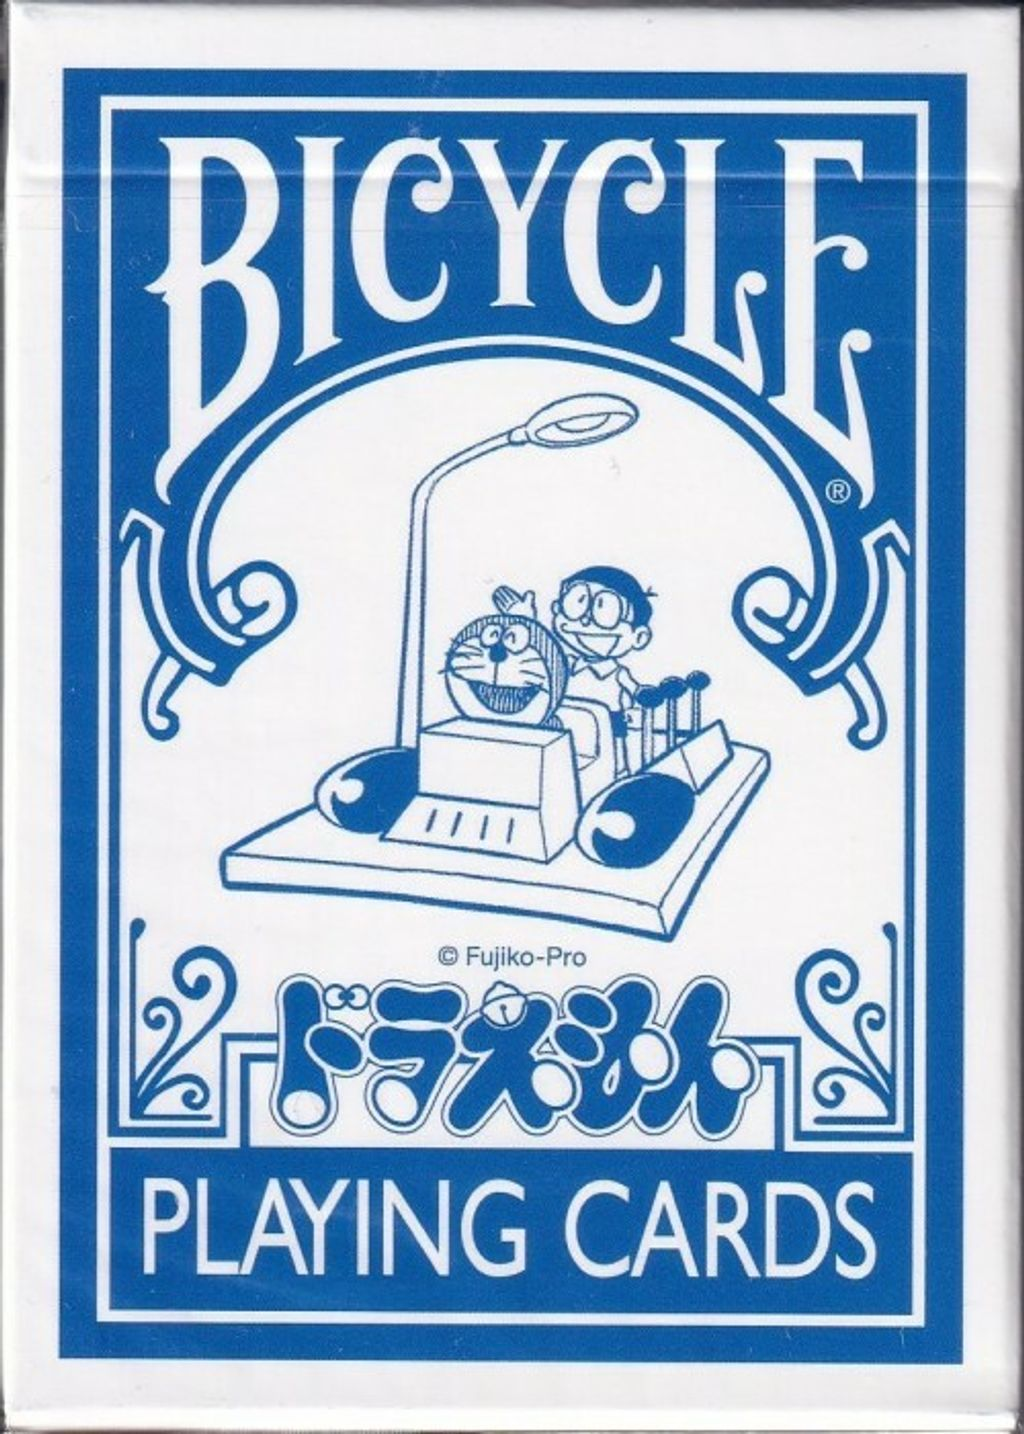 deck_revision_11164_front_img.jpg